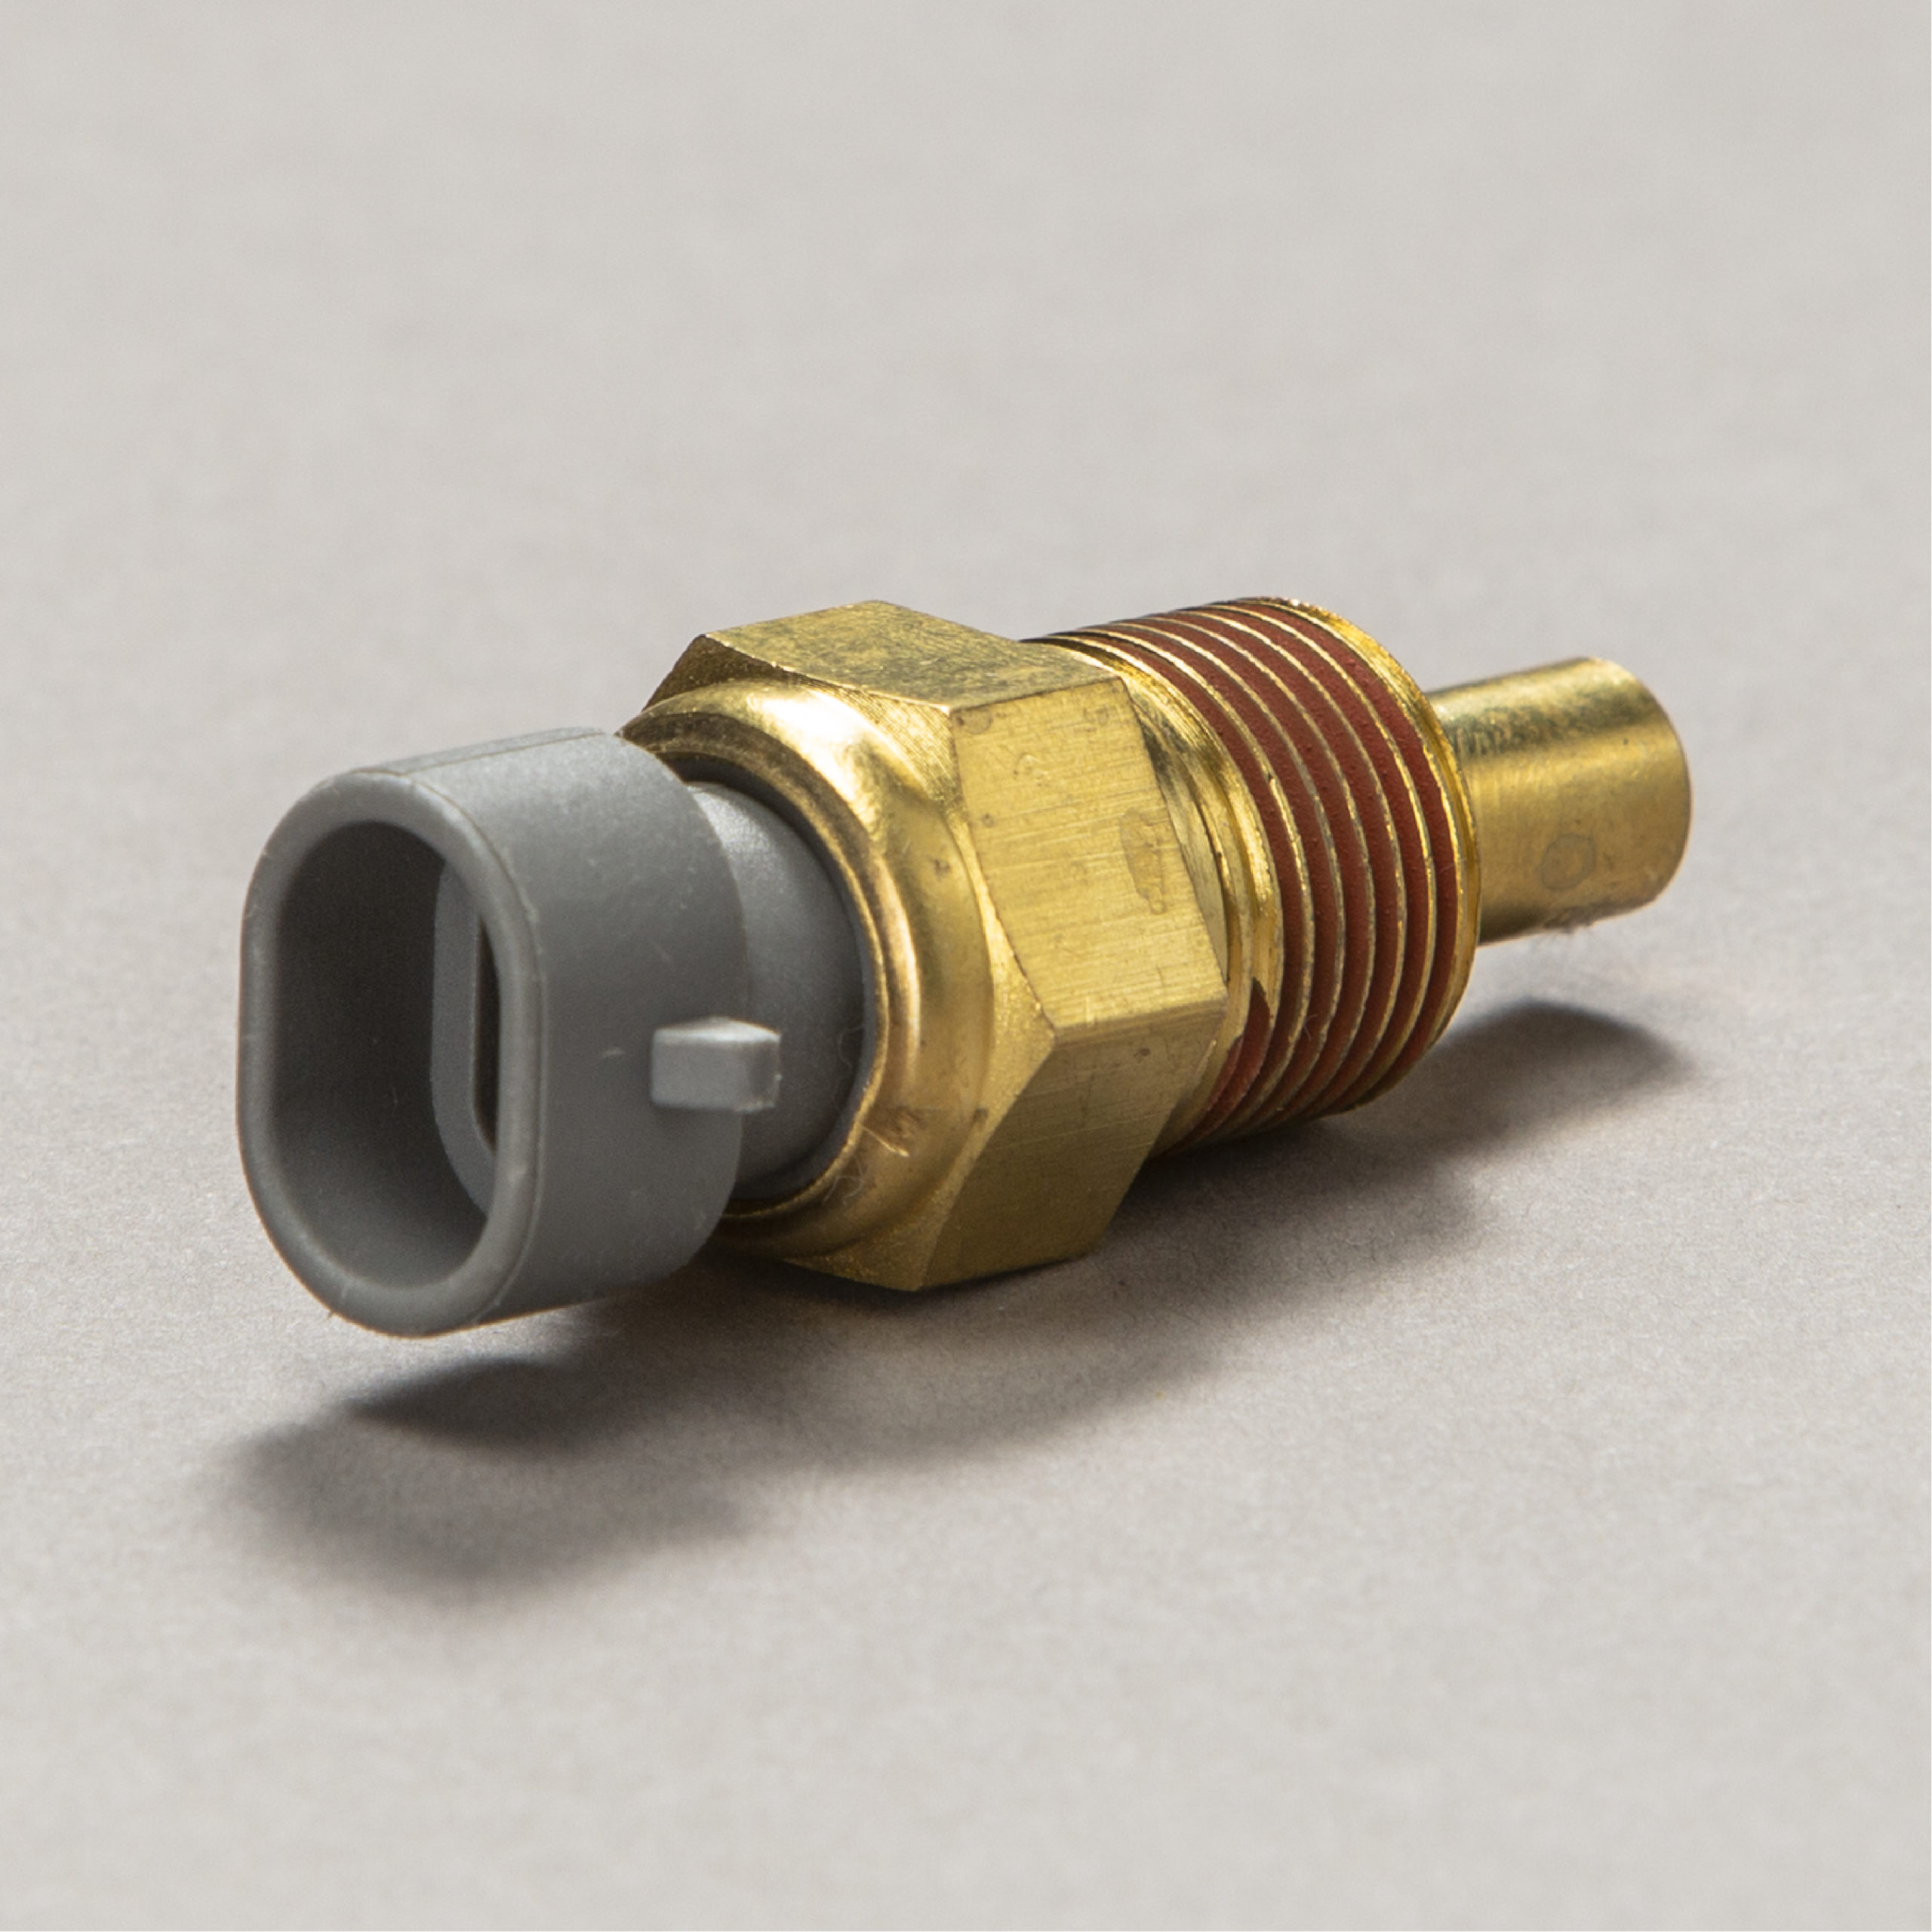 Engine Coolant Temperature Sensor Npt Thread Performance Electronics